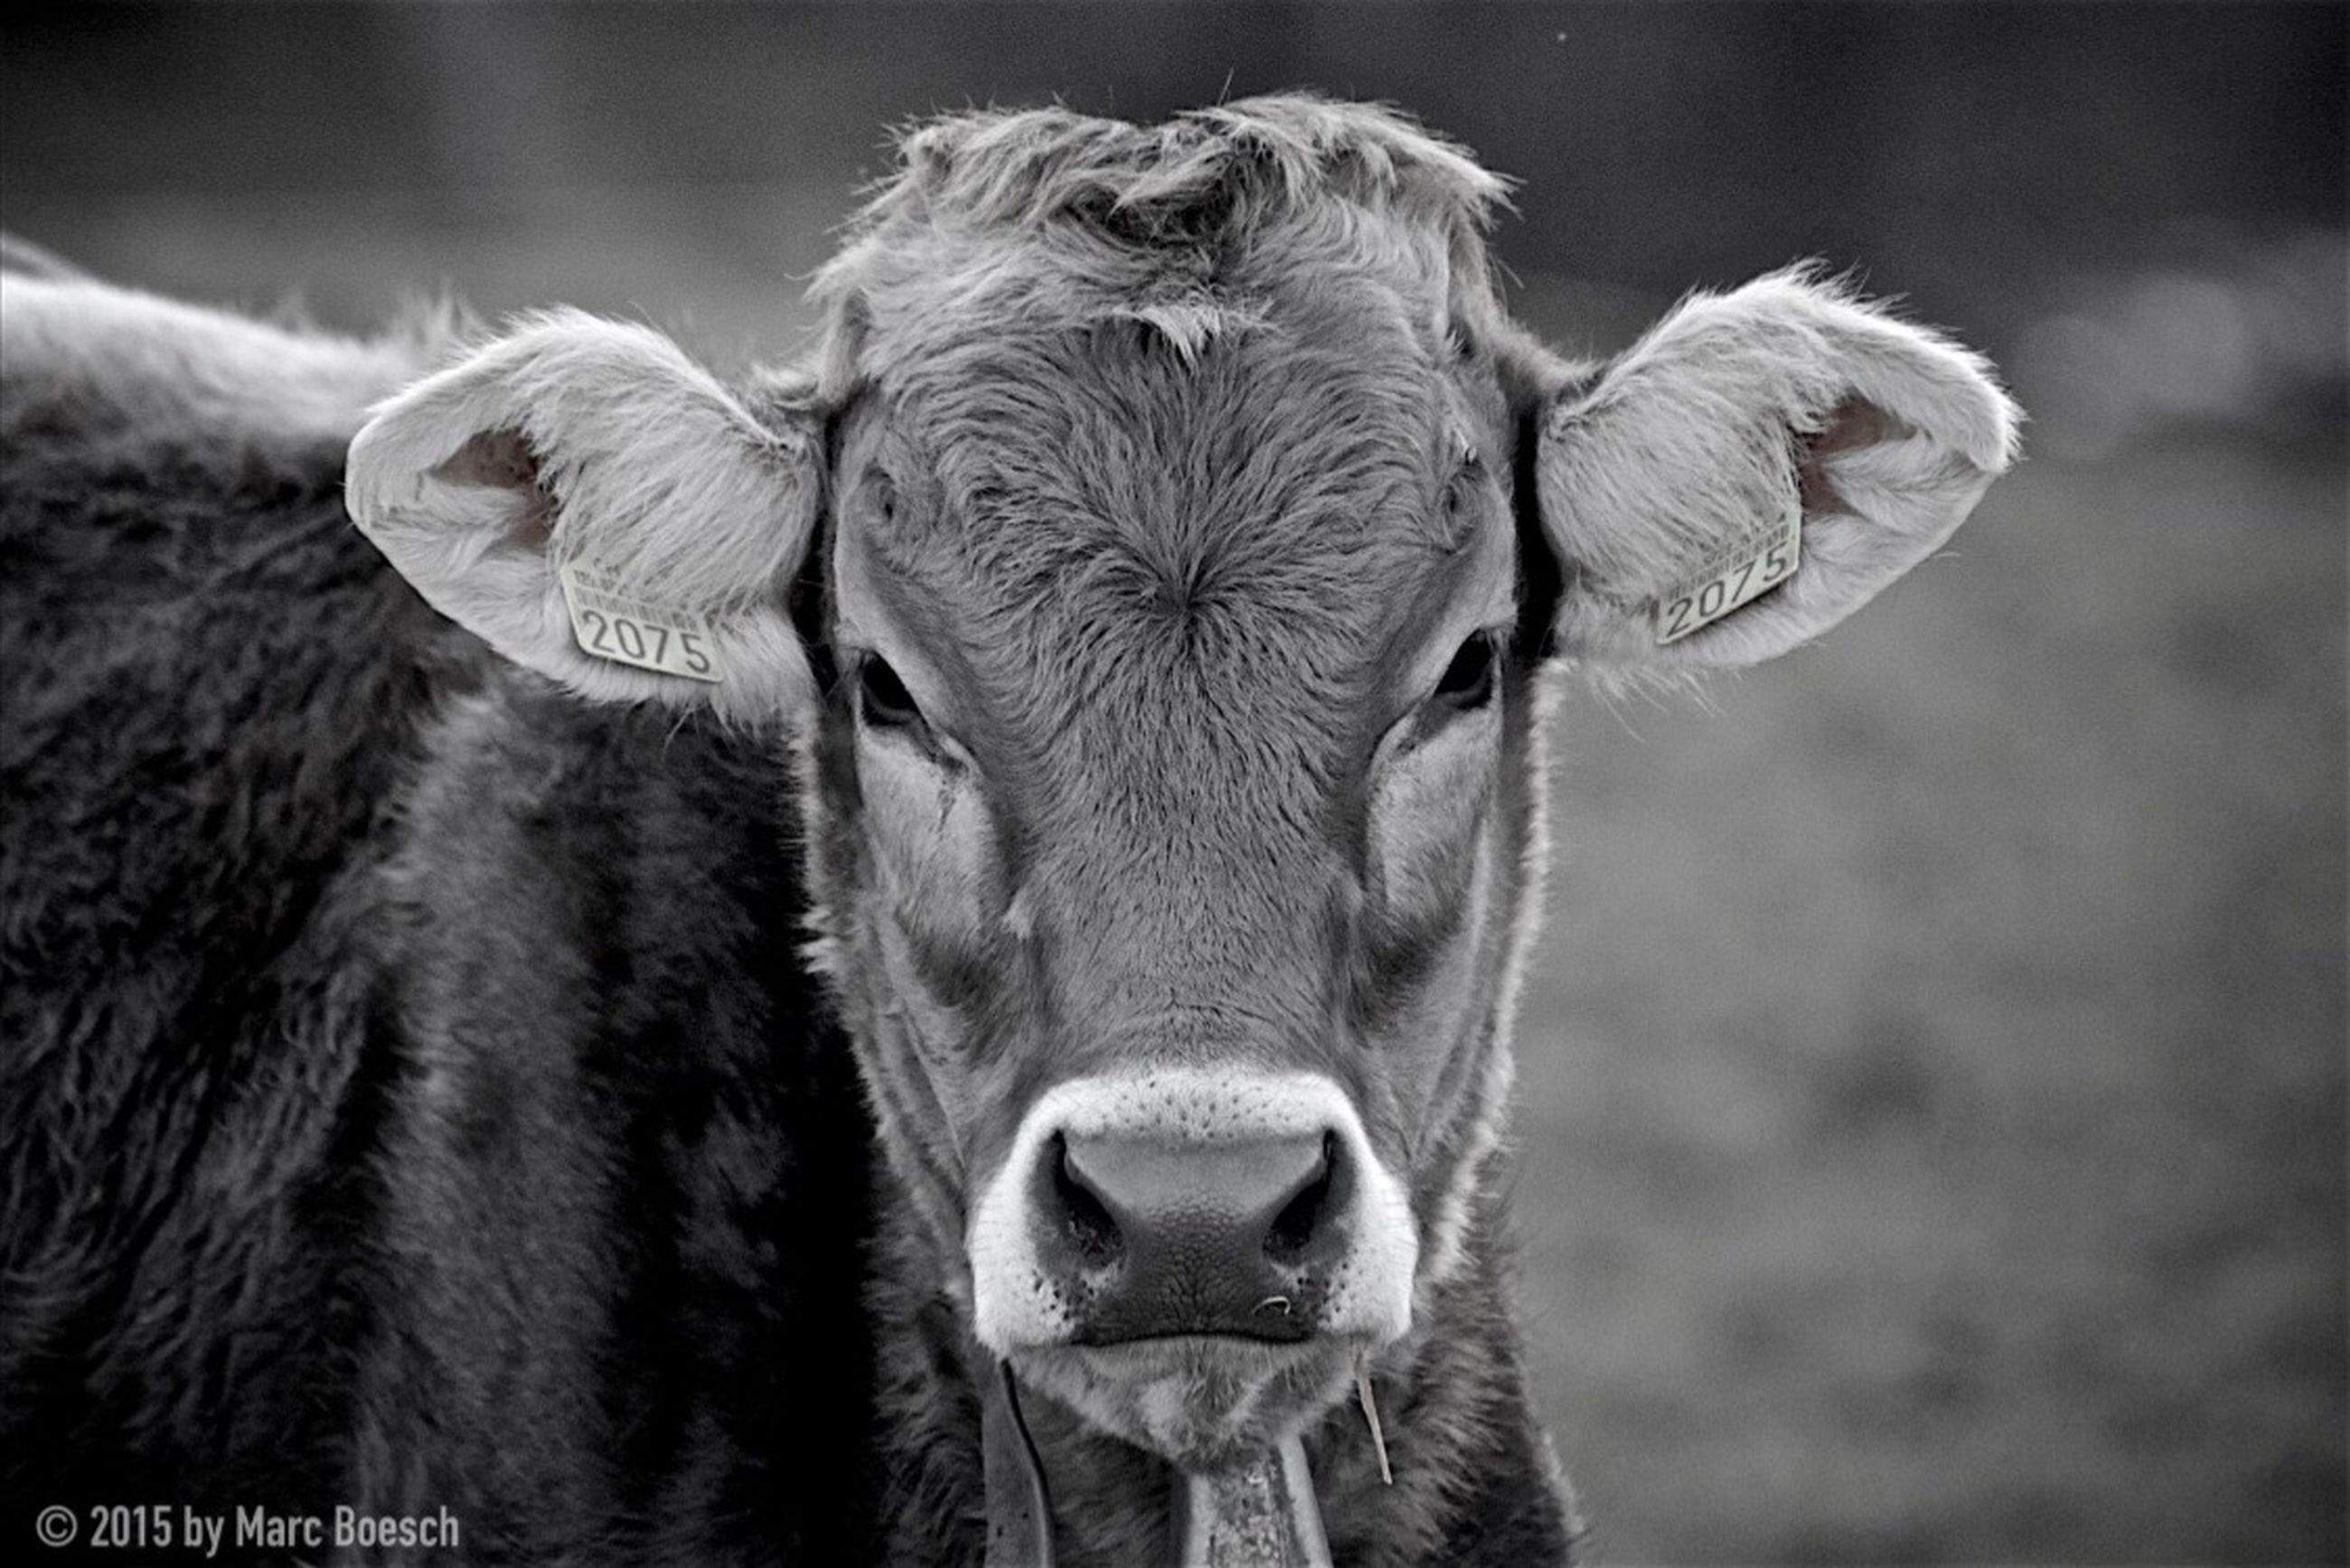 animal themes, focus on foreground, mammal, livestock, animal head, close-up, one animal, horse, domestic animals, herbivorous, animal body part, portrait, cow, field, front view, day, outdoors, looking at camera, two animals, wildlife